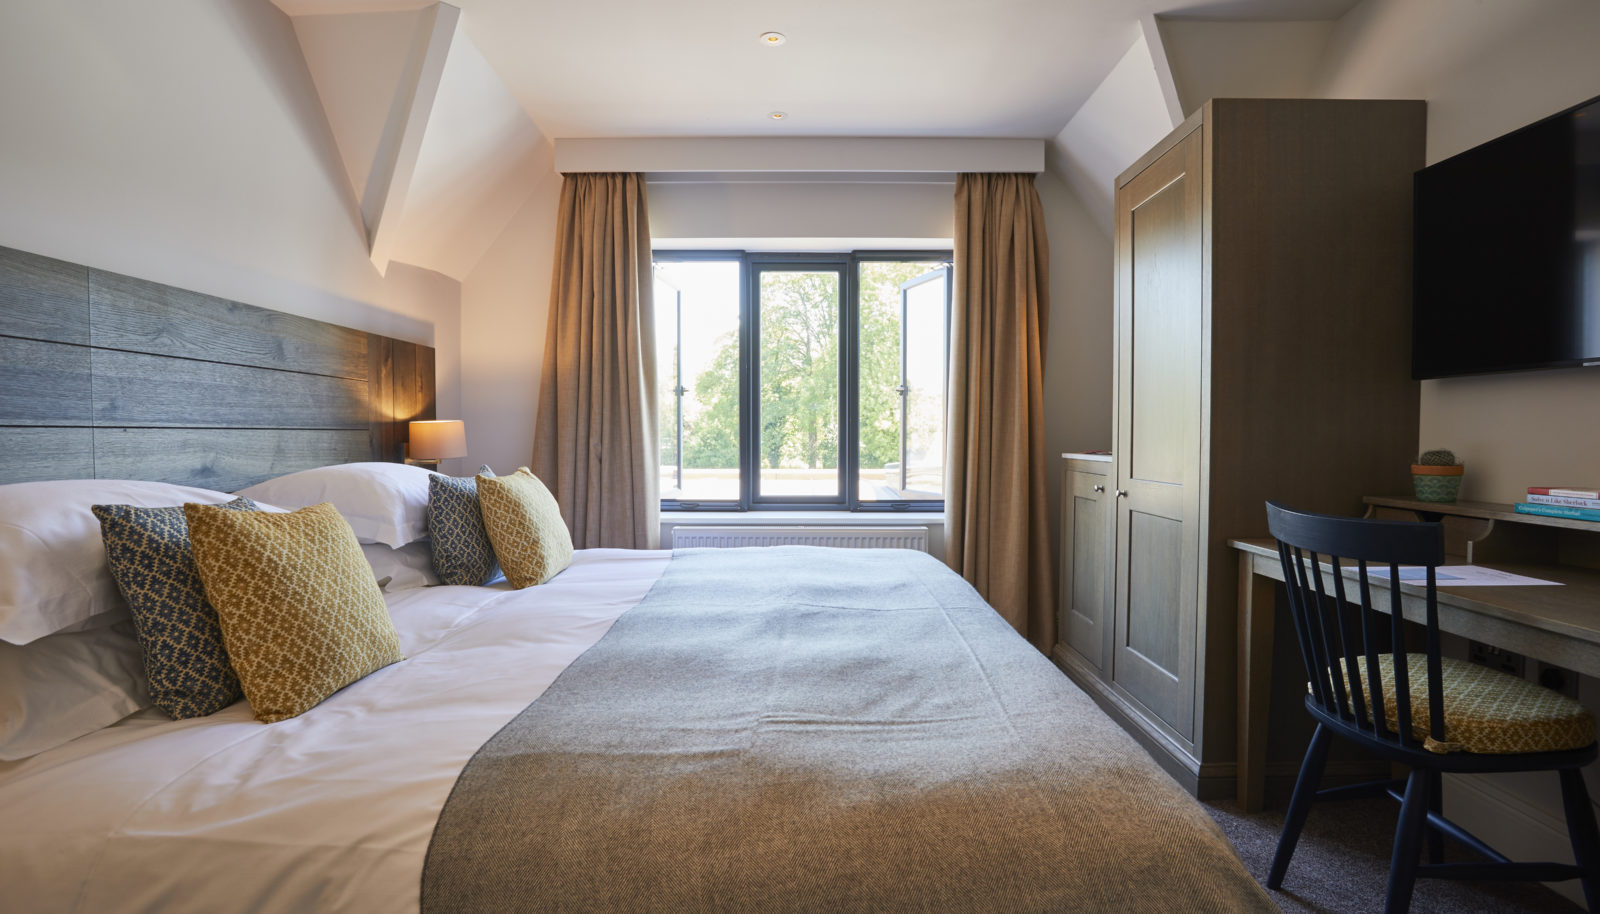 Medium double river view room with bed at riverside Hotel the Swan at Streatley